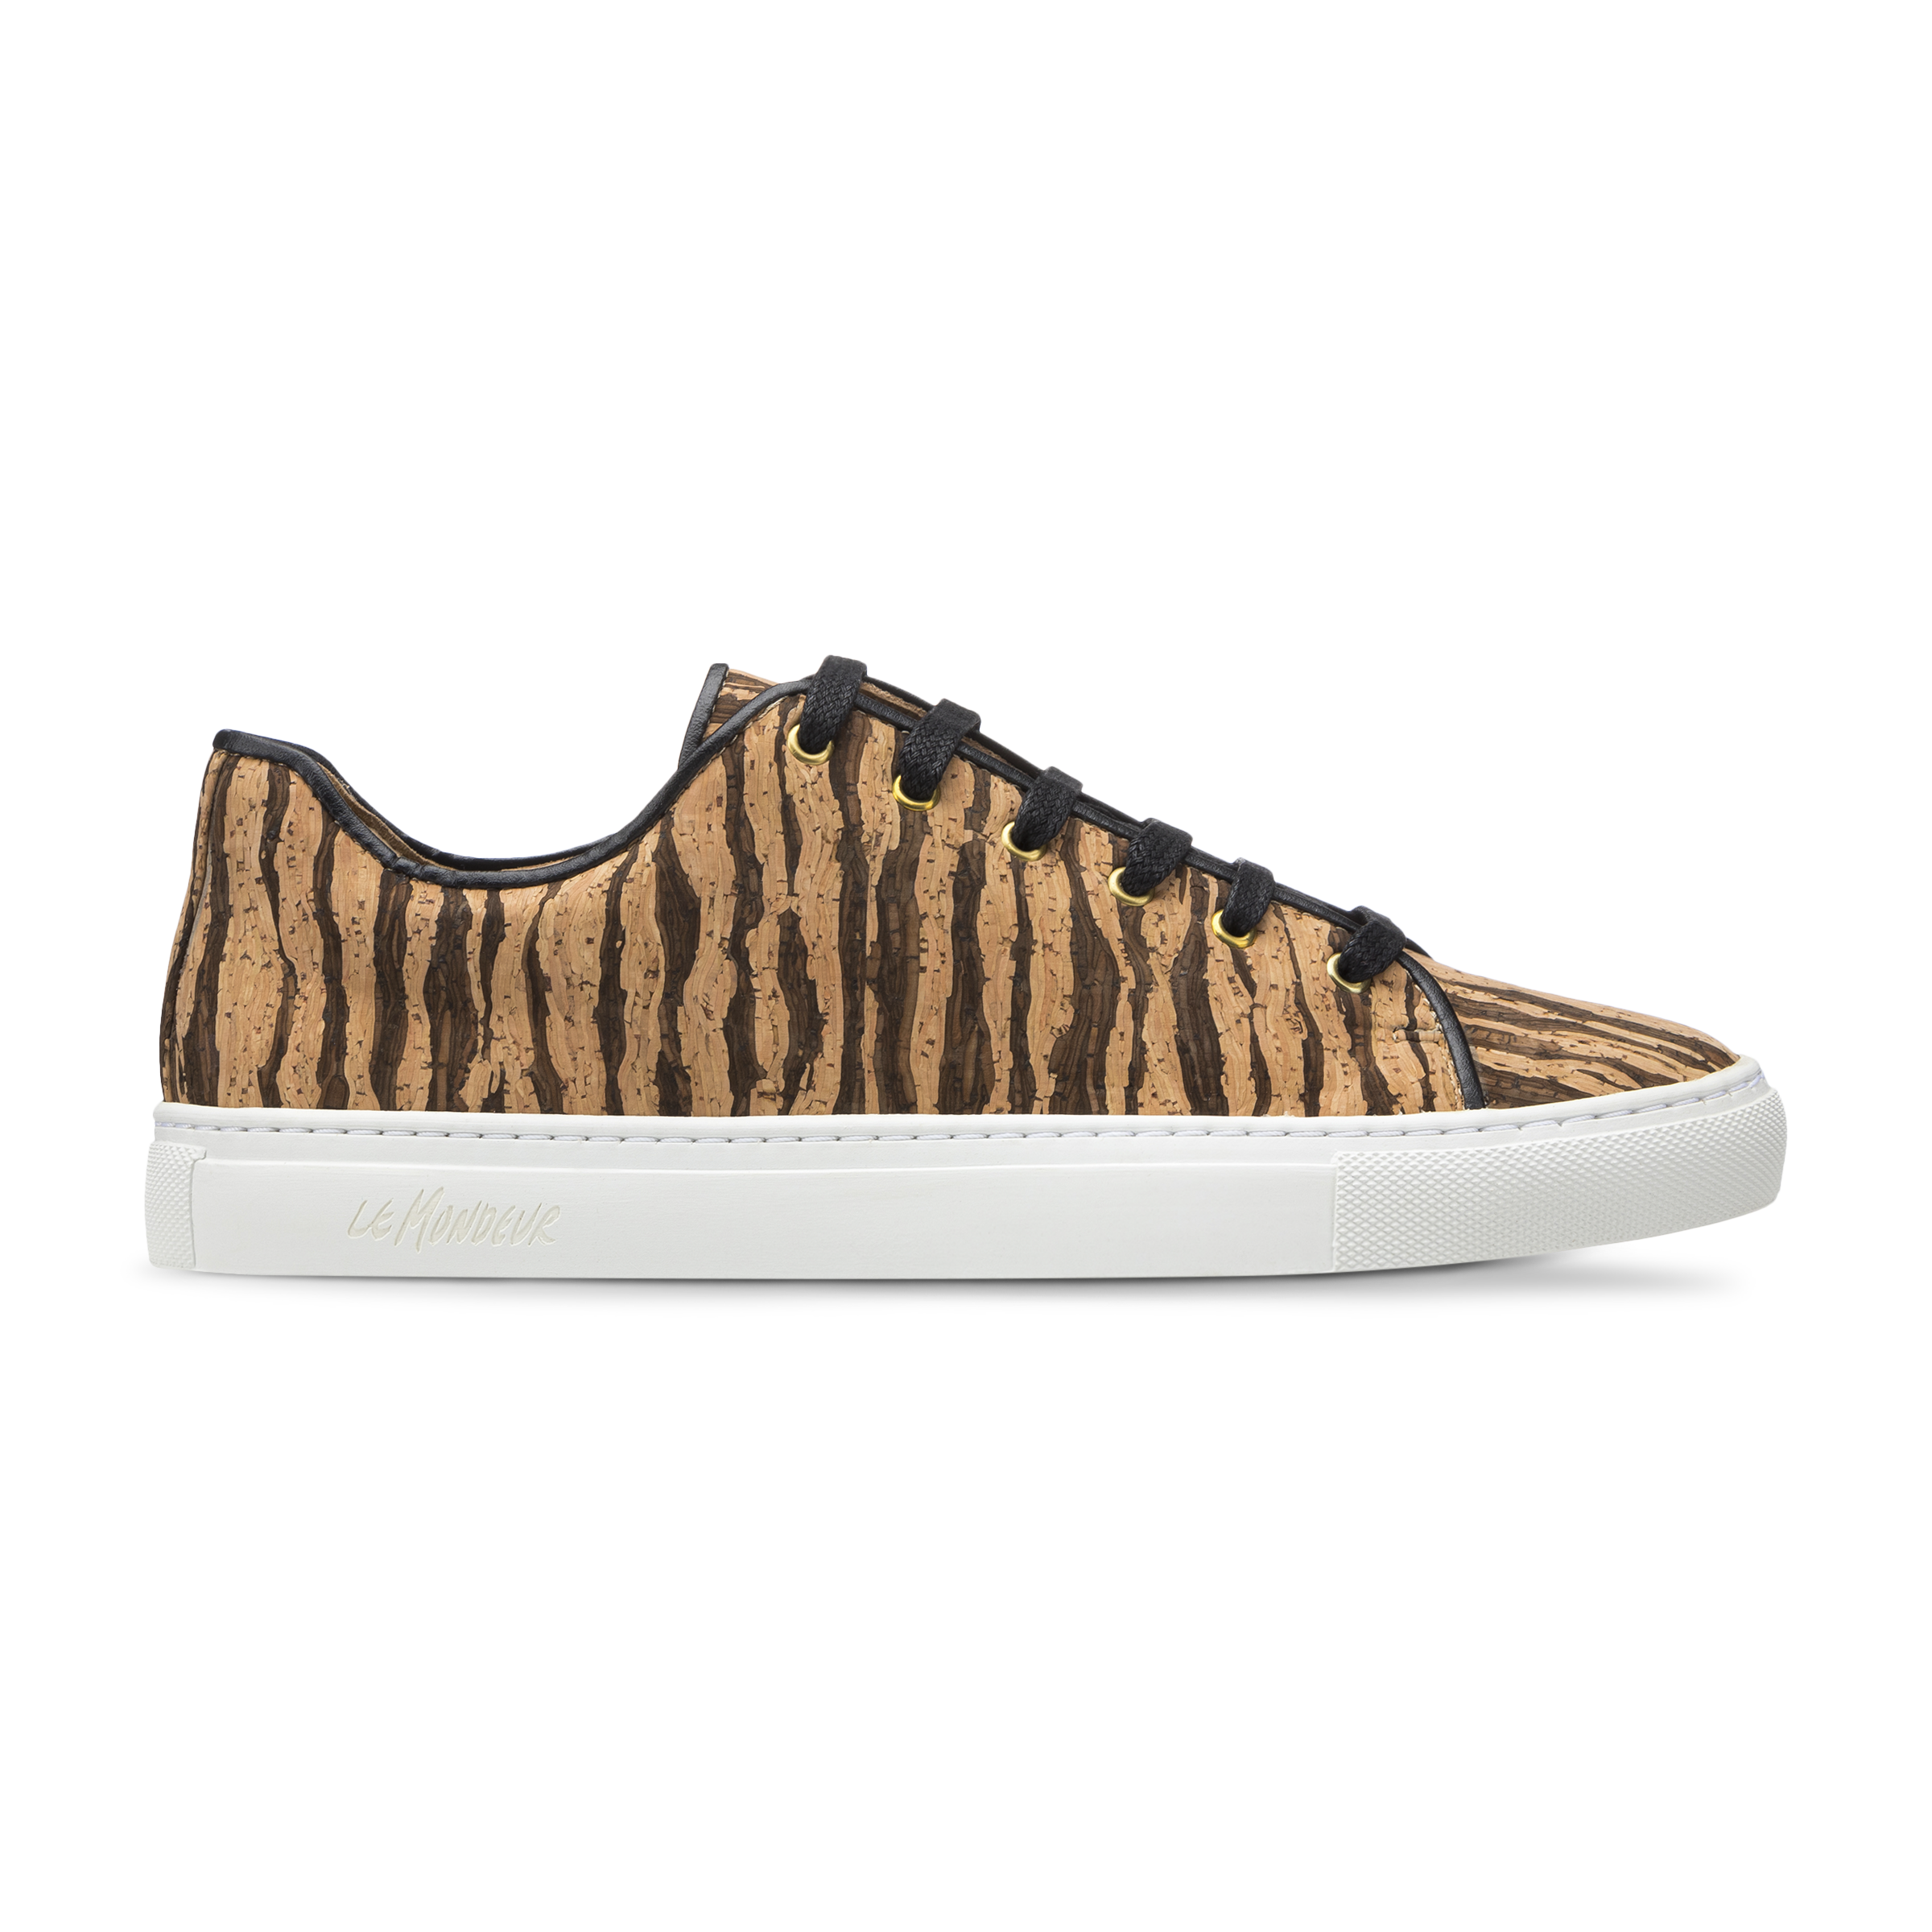 The Eco Tiger - Low Top